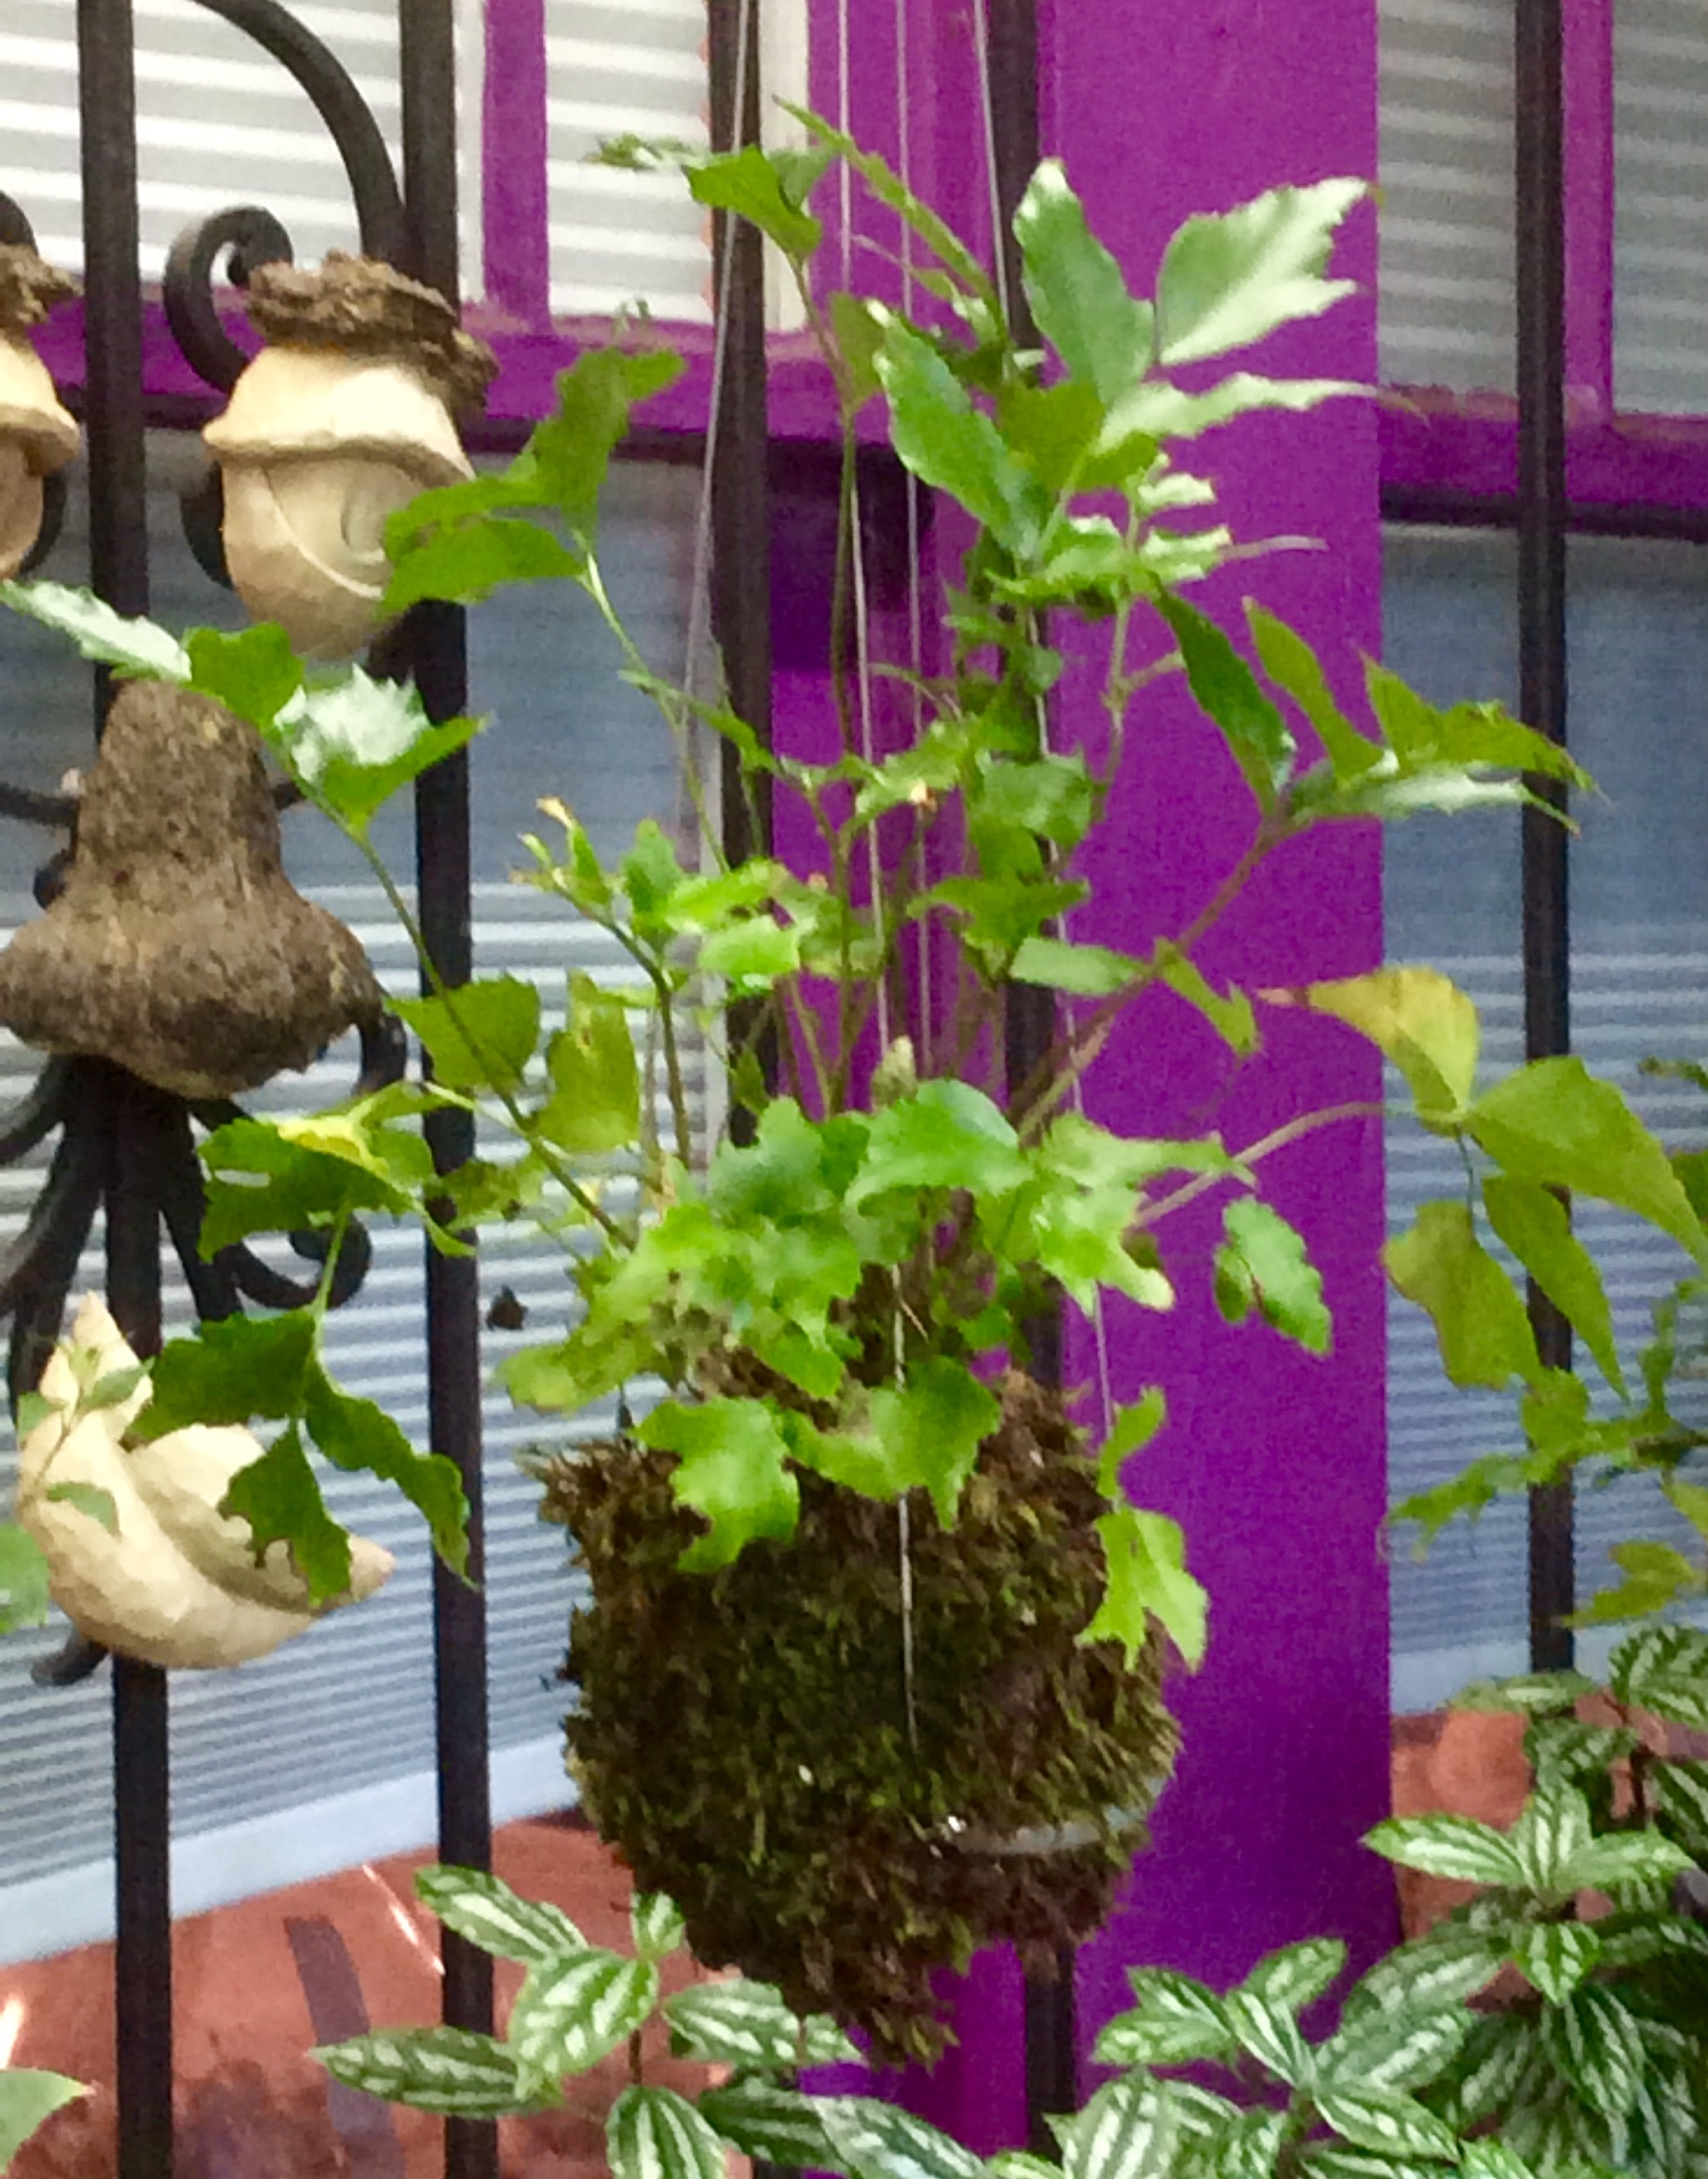 Ferns are traditionally used in kokedama.  This holly fern is a beauty, don't you think?